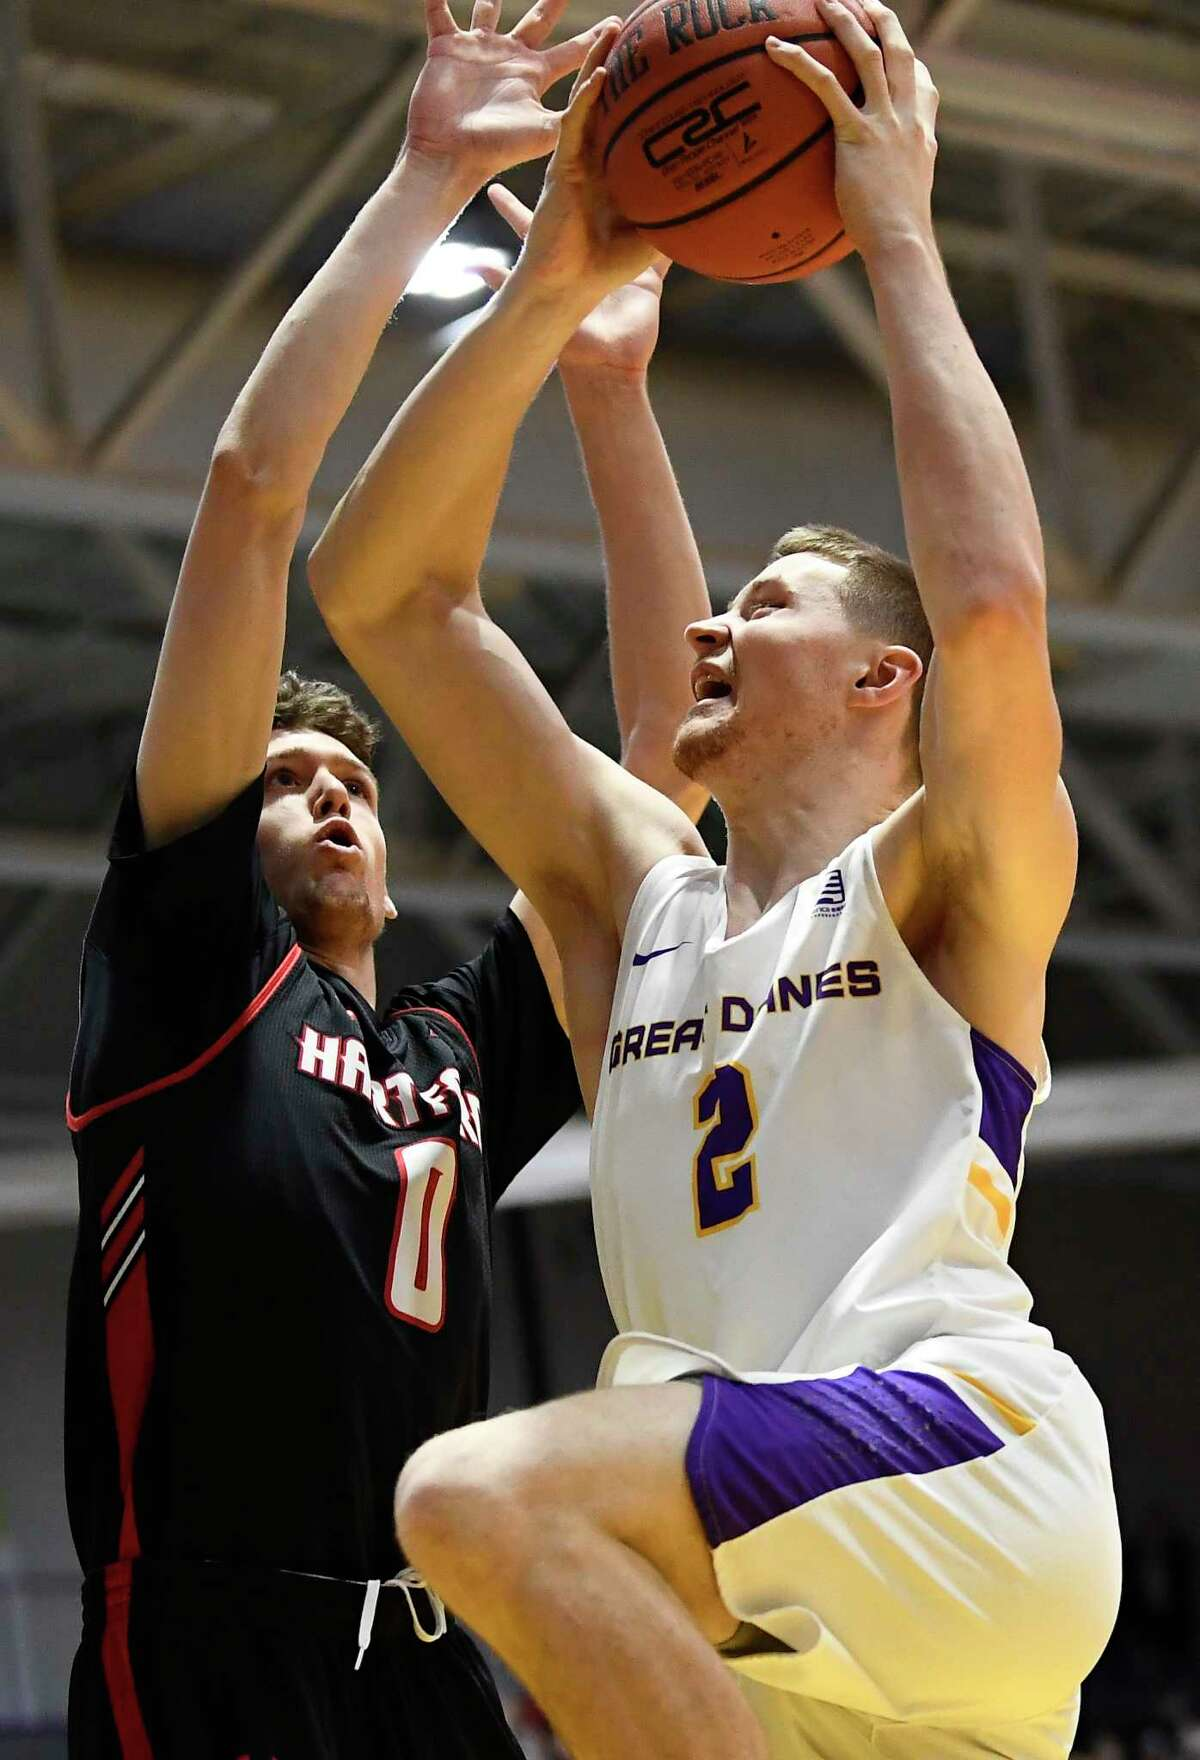 University at Albany guard Trey Hutcheson (2) scores against Hartford forward Hunter Marks (0) during the first half of an NCAA basketball game Saturday, Jan. 25, 2020, in Albany, N.Y. (Hans Pennink / Special to the Times Union) ORG XMIT: 012620_uamen_HP112